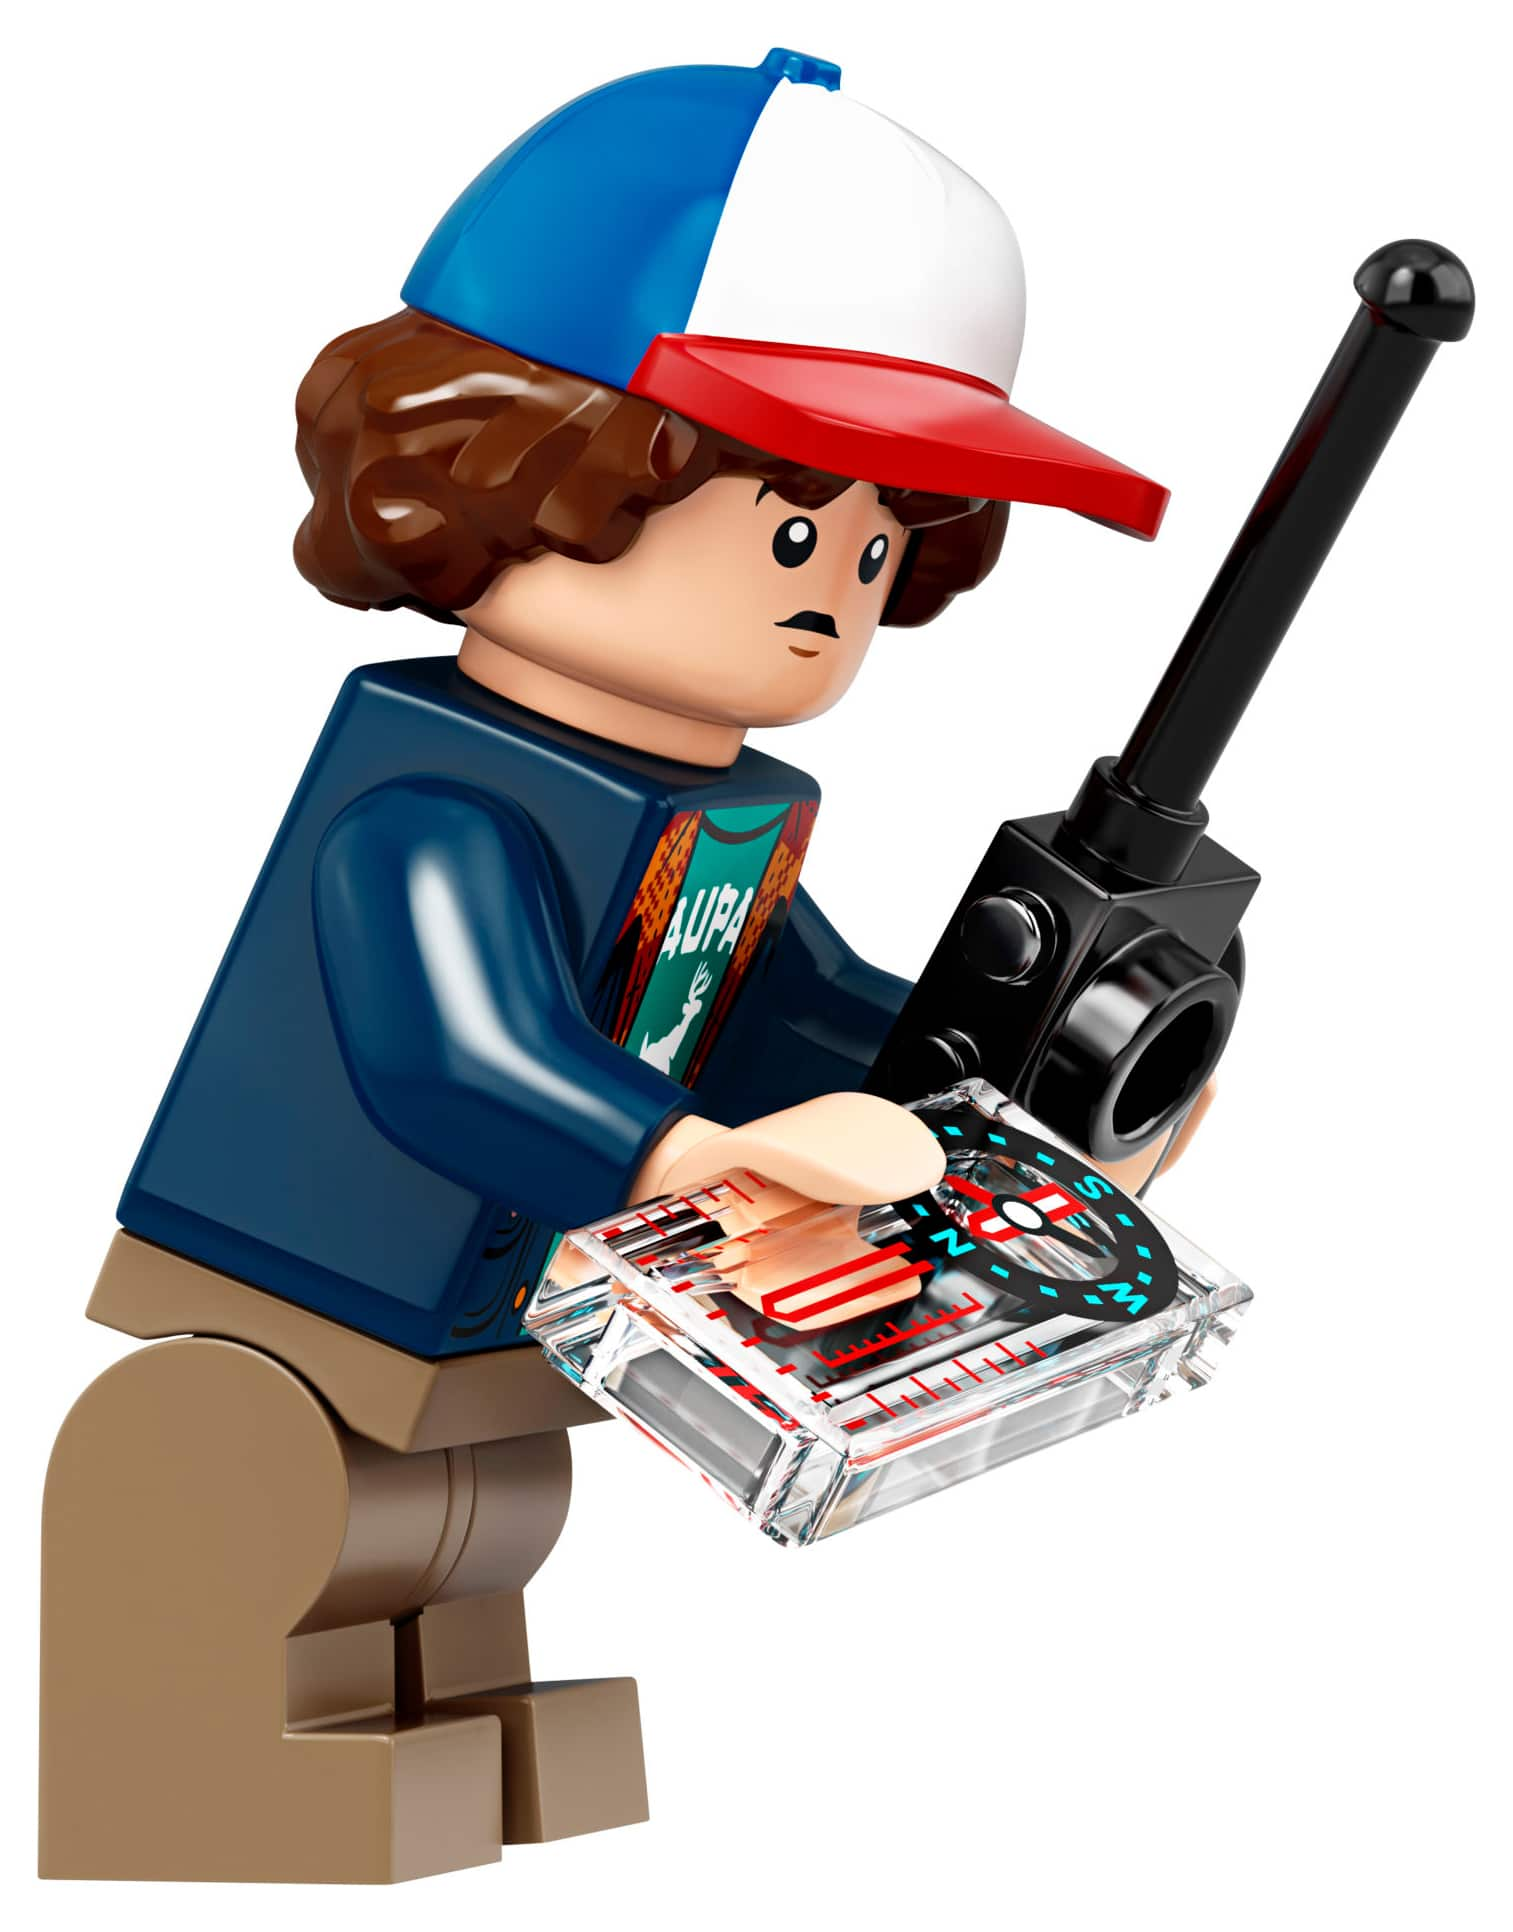 LEGO Stranger Things Dustin Henderson